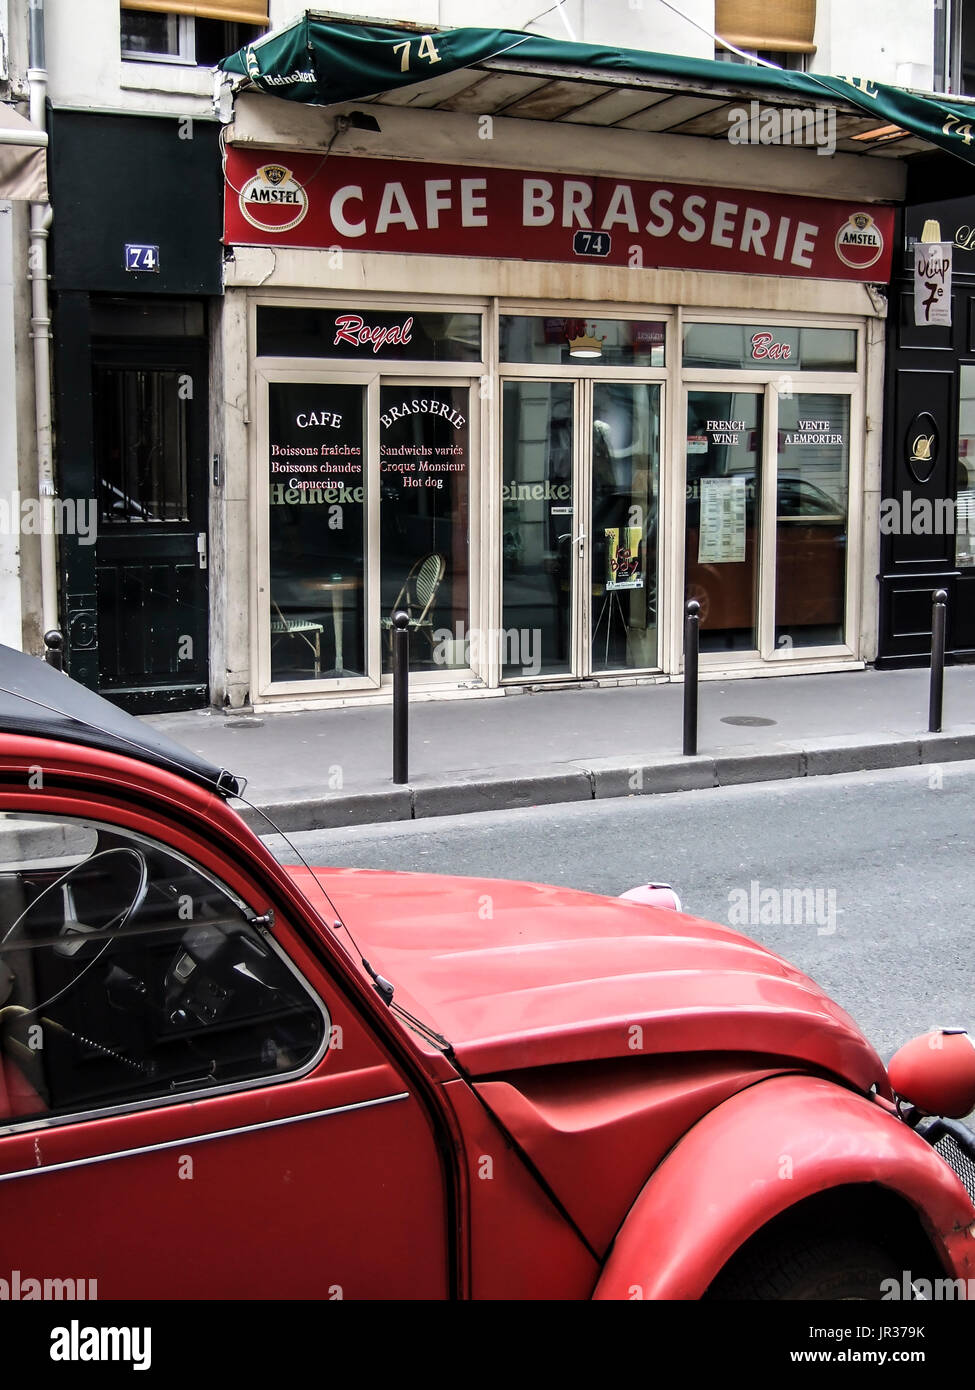 paris france - a red 2 cv citroen front of a cafe brasserie - french stock photo  151891647